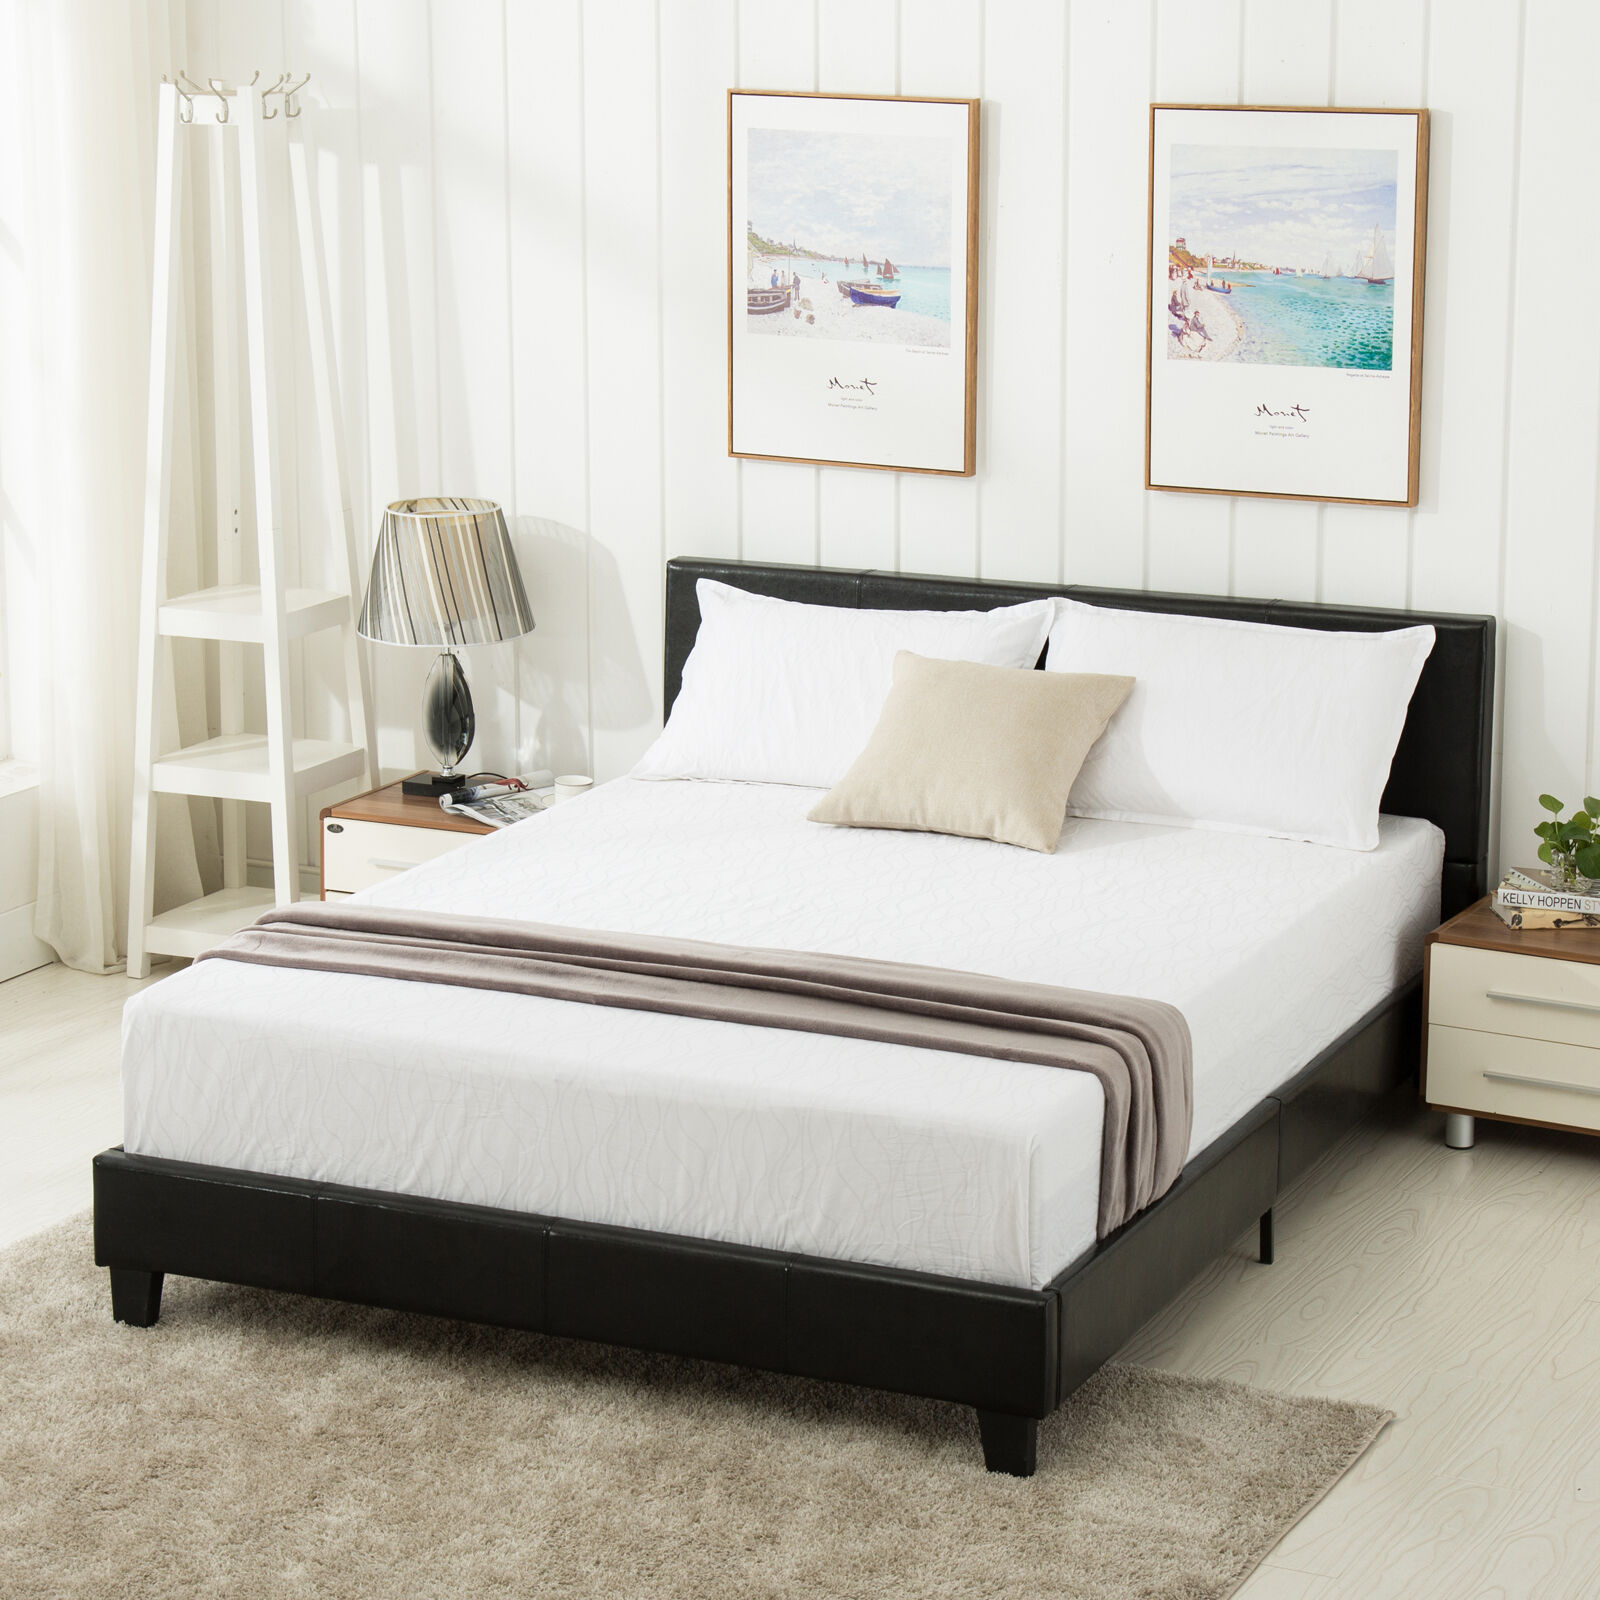 Queen Size Faux Leather Platform Bed Frame & Slats